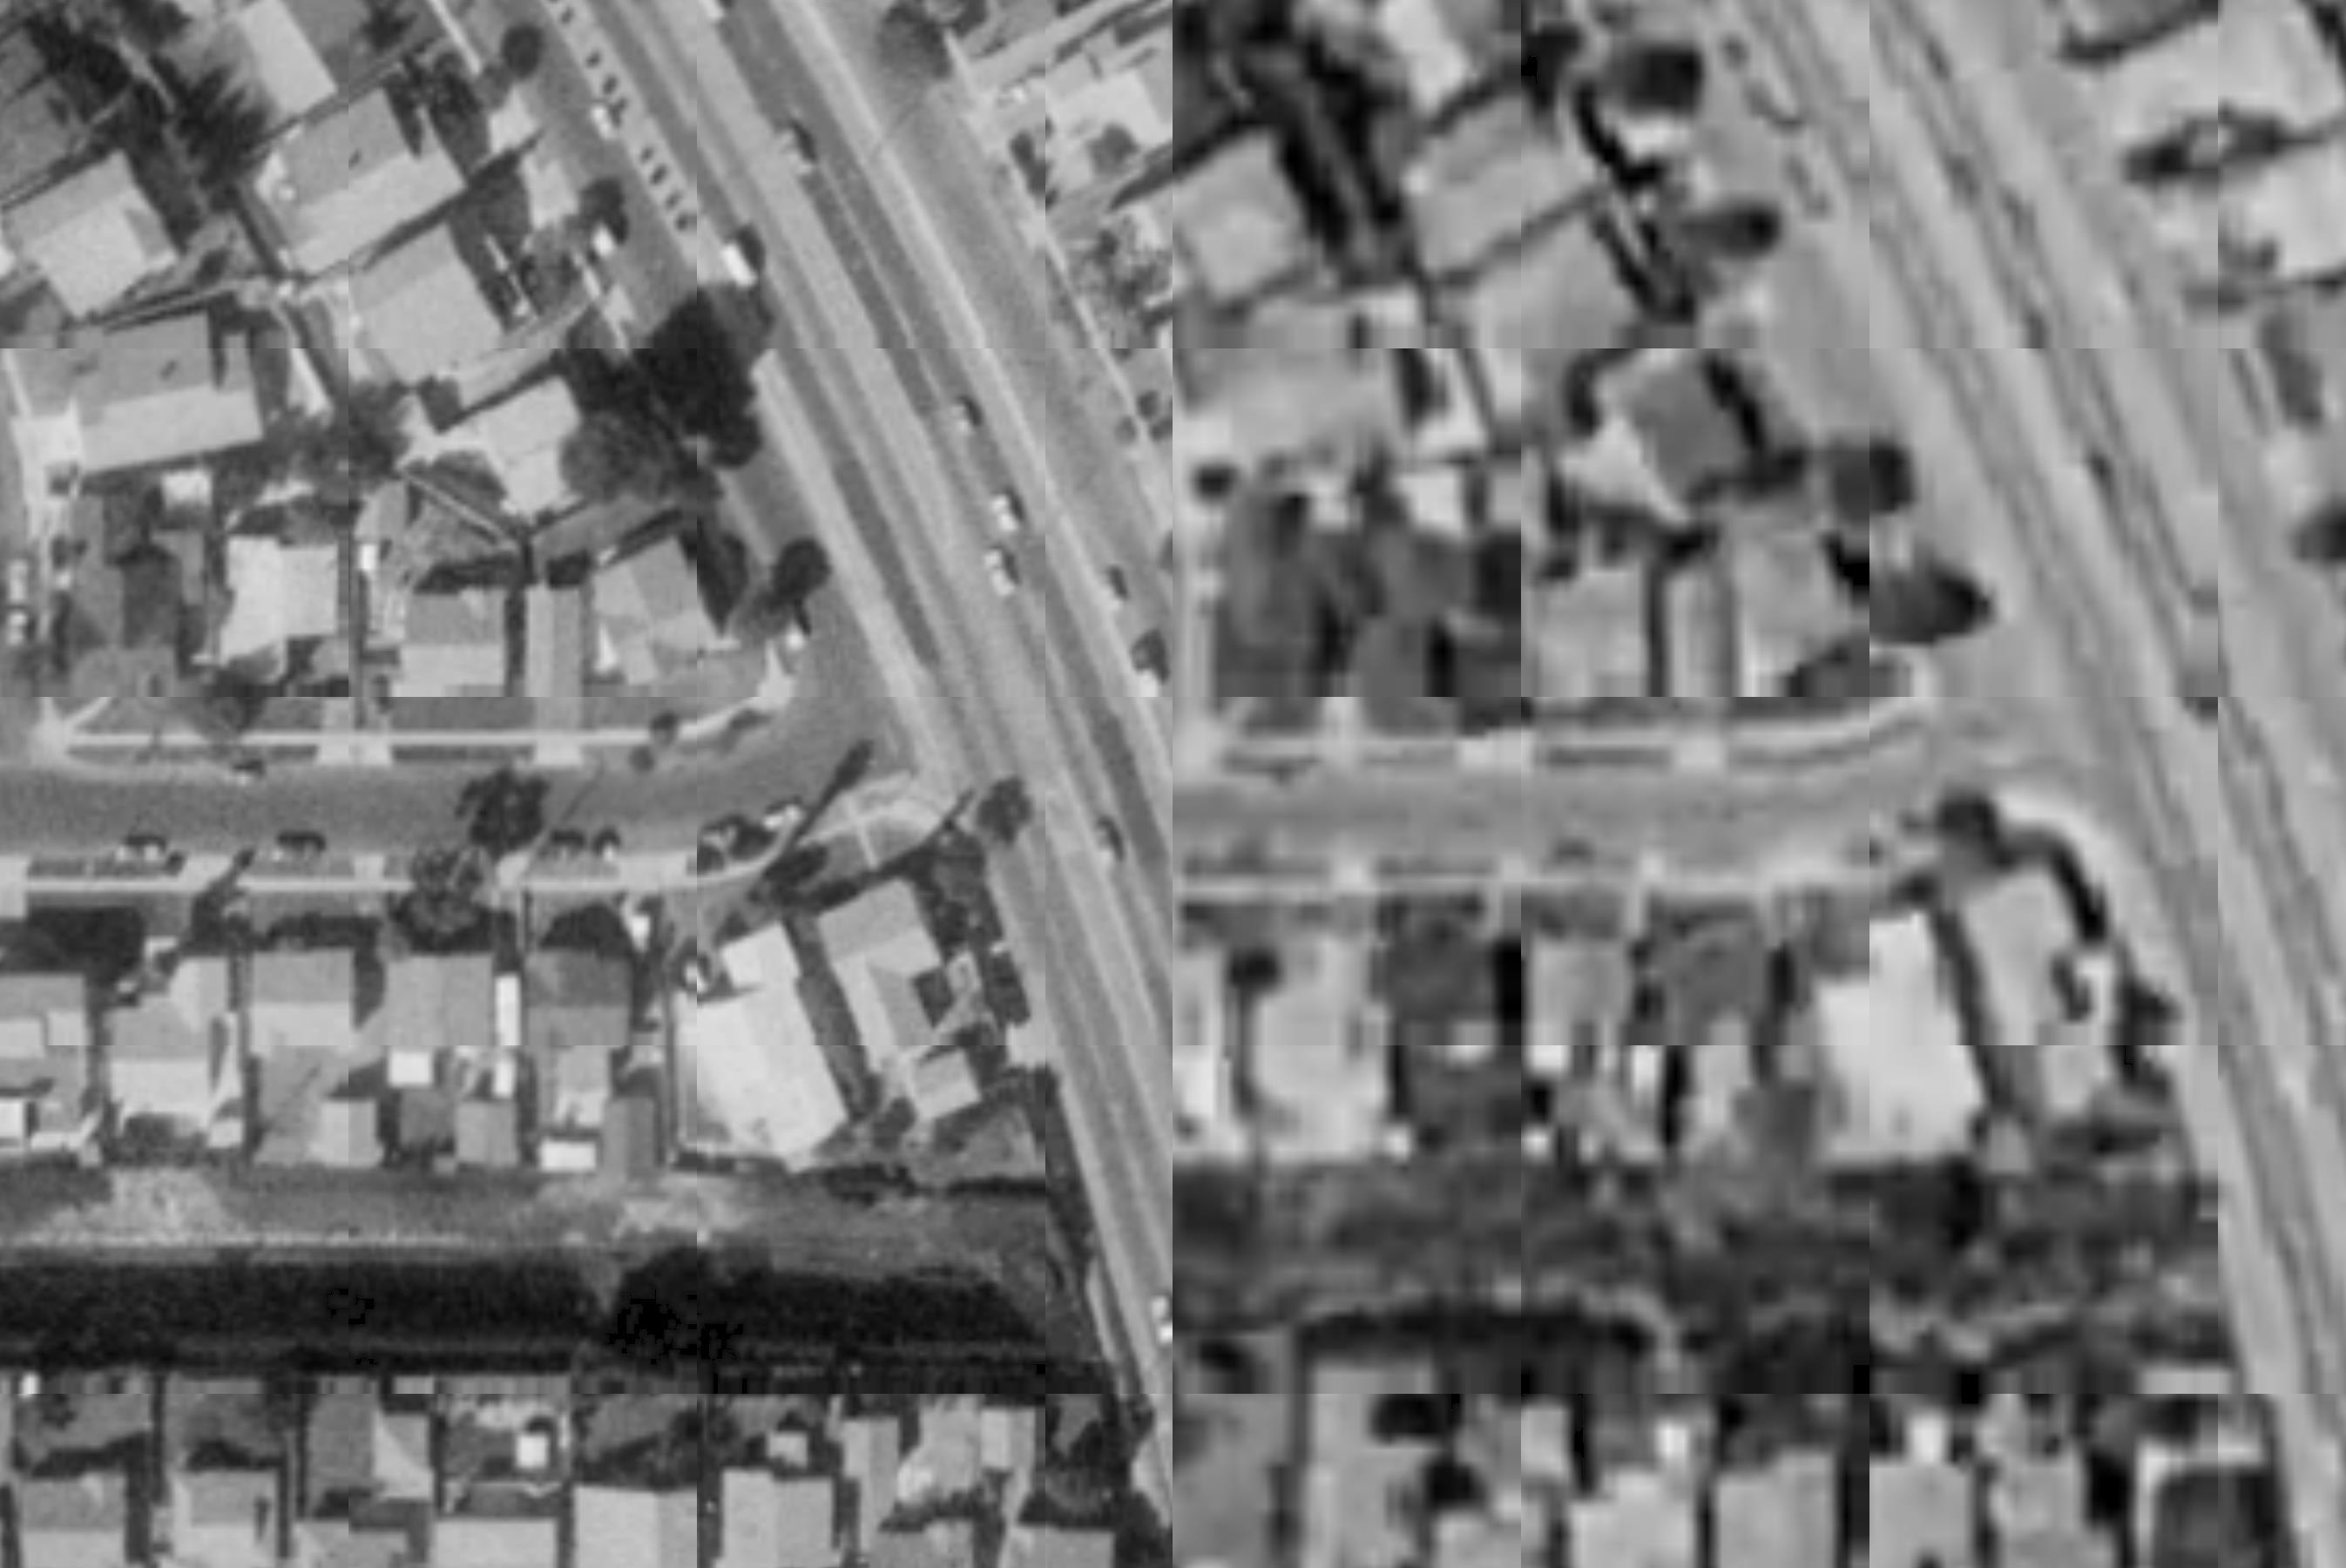 Satellite view of Deelane Street and Anza Avenue (Torrance, CA) in 1980 and 1994